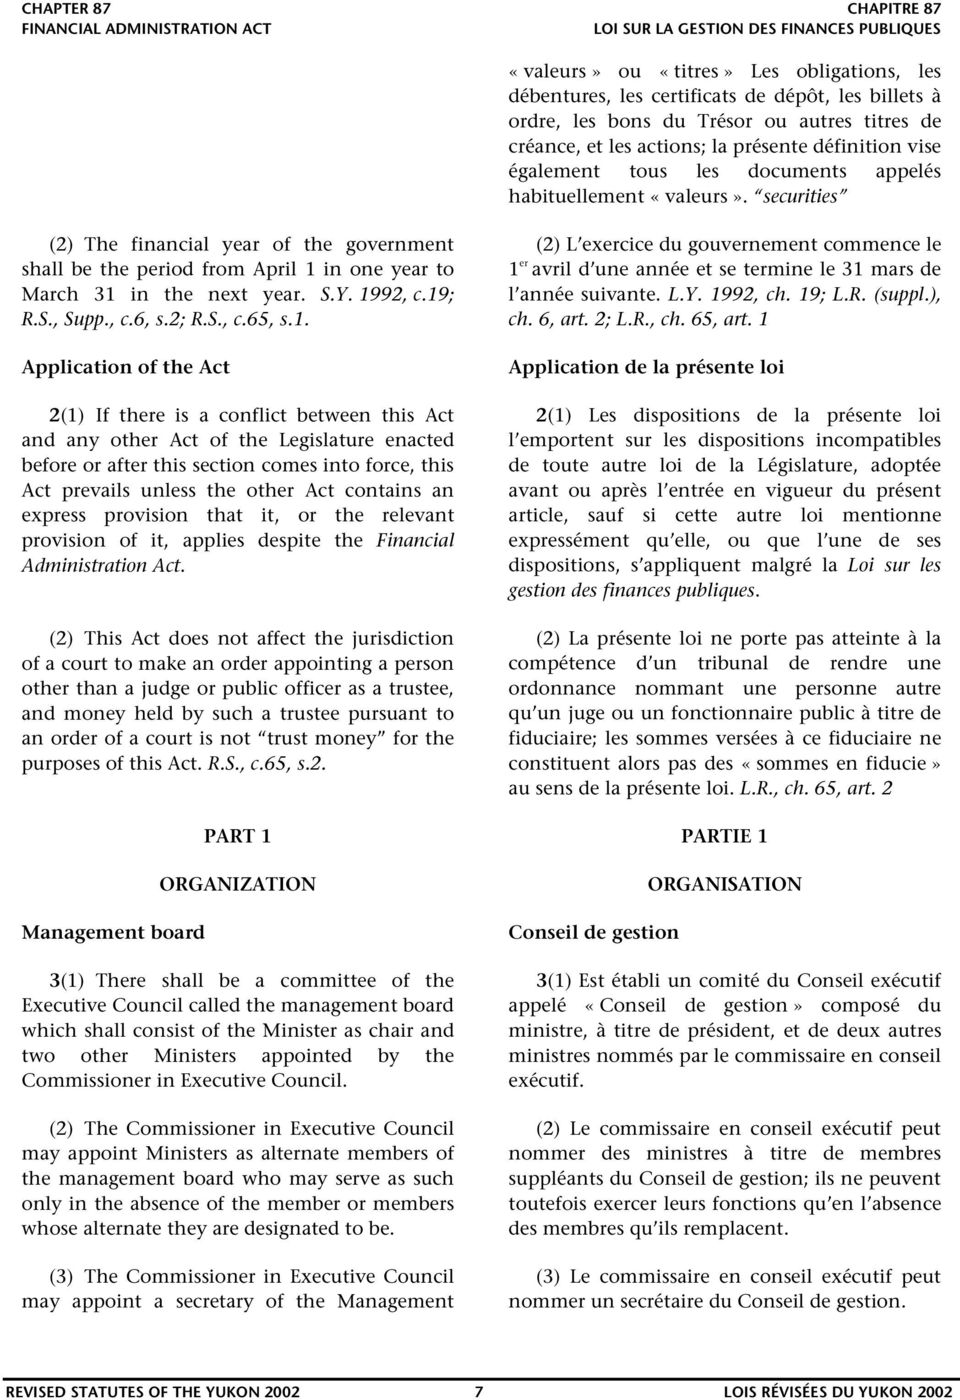 1992, c.19; R.S., Supp., c.6, s.2; R.S., c.65, s.1. Application of the Act 2(1) If there is a conflict between this Act and any other Act of the Legislature enacted before or after this section comes